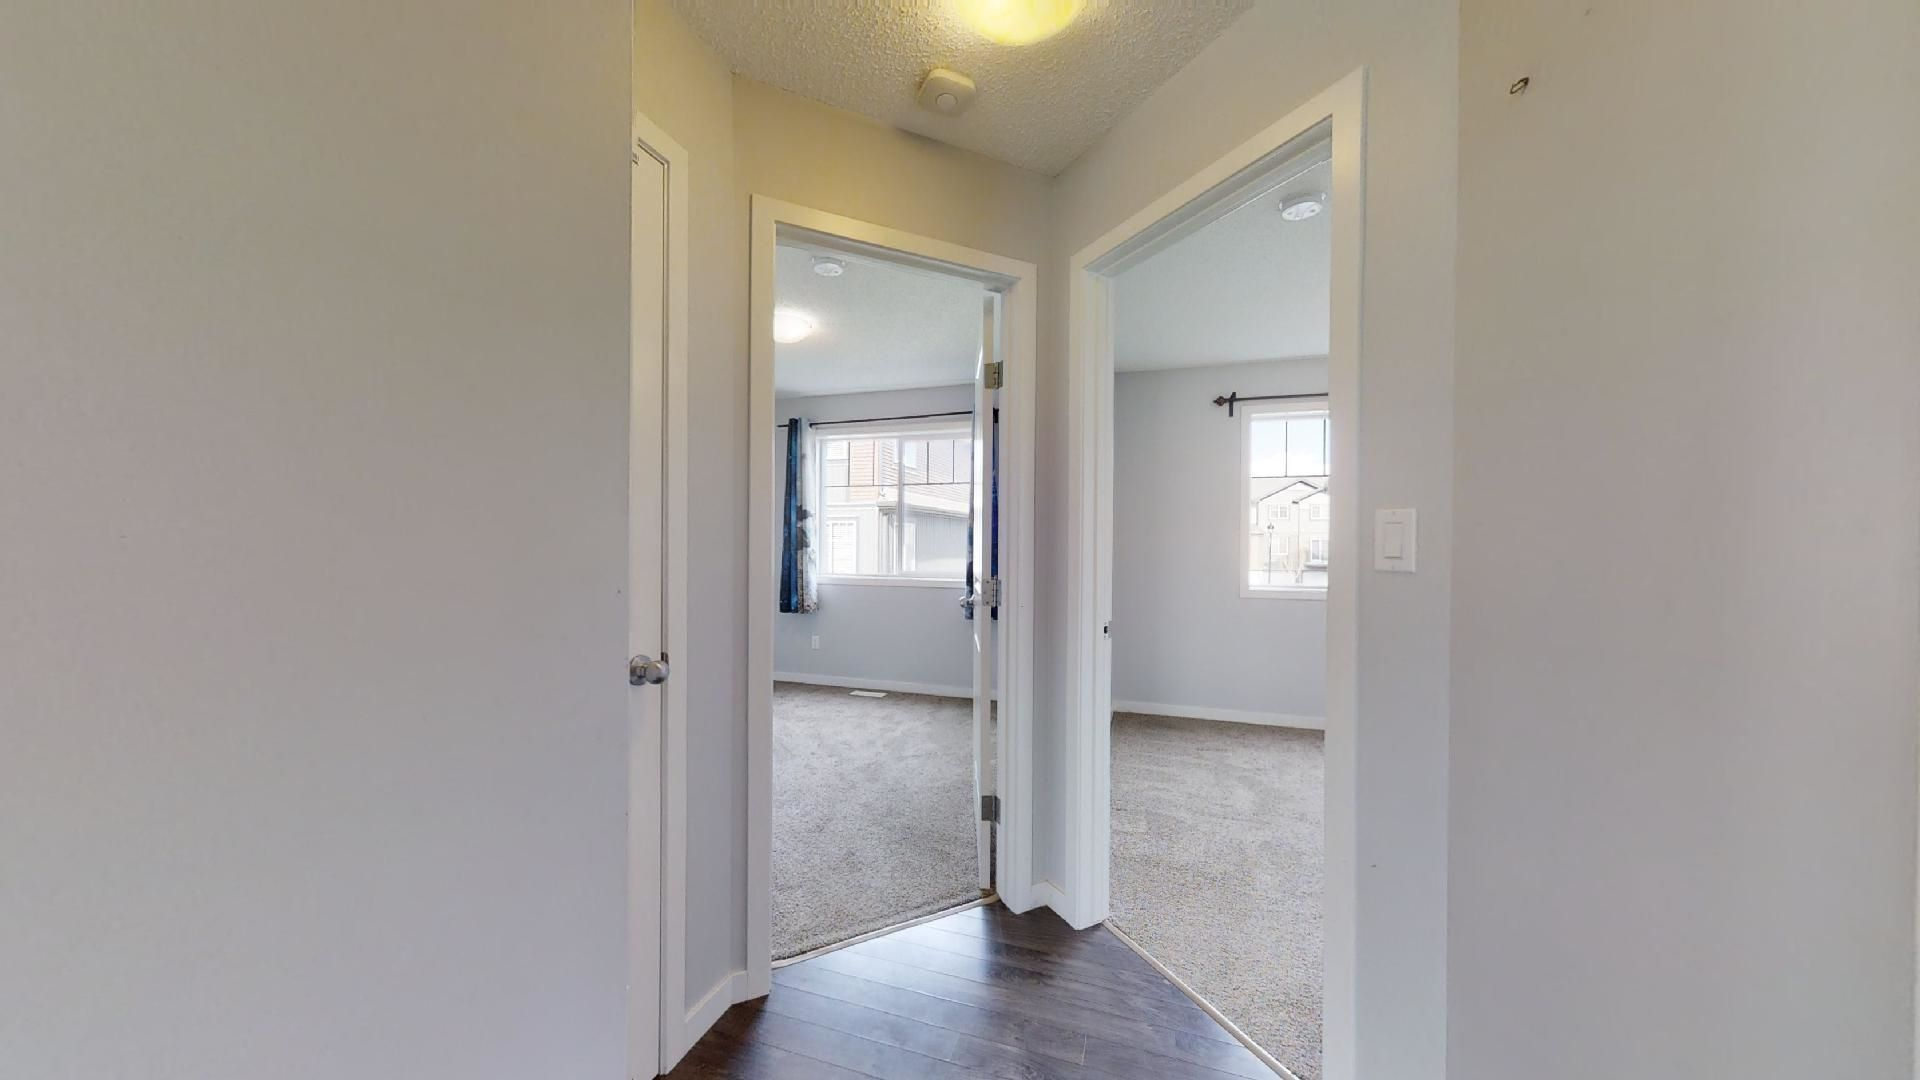 Main Photo: 35 3305 ORCHARDS Link in Edmonton: Zone 53 Townhouse for sale : MLS®# E4266164